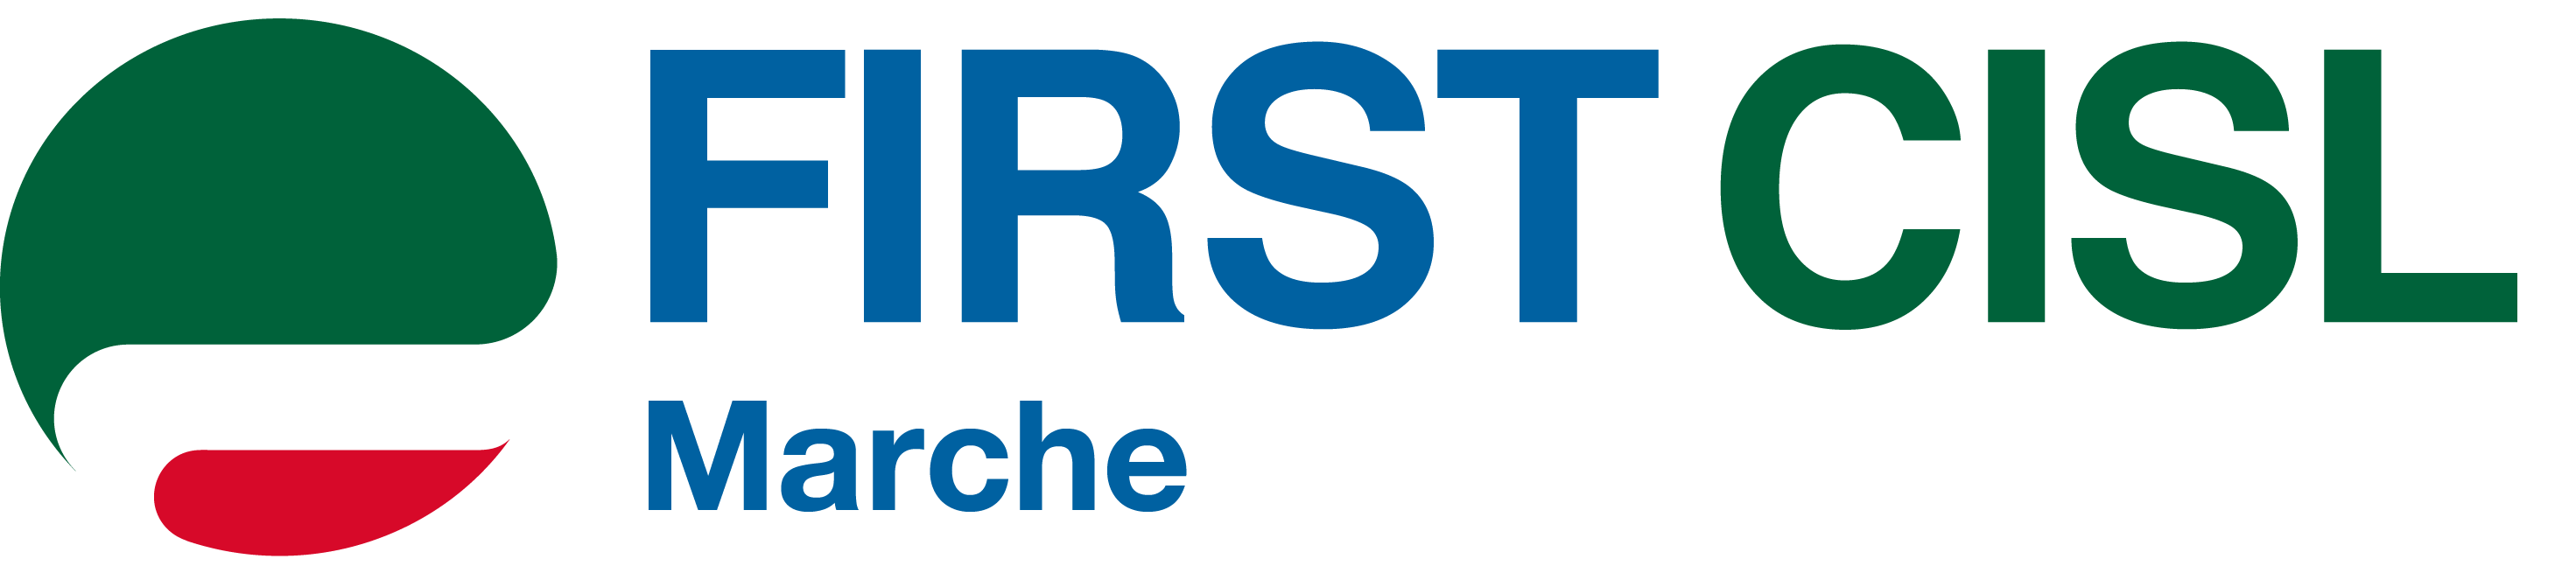 FIRST Marche